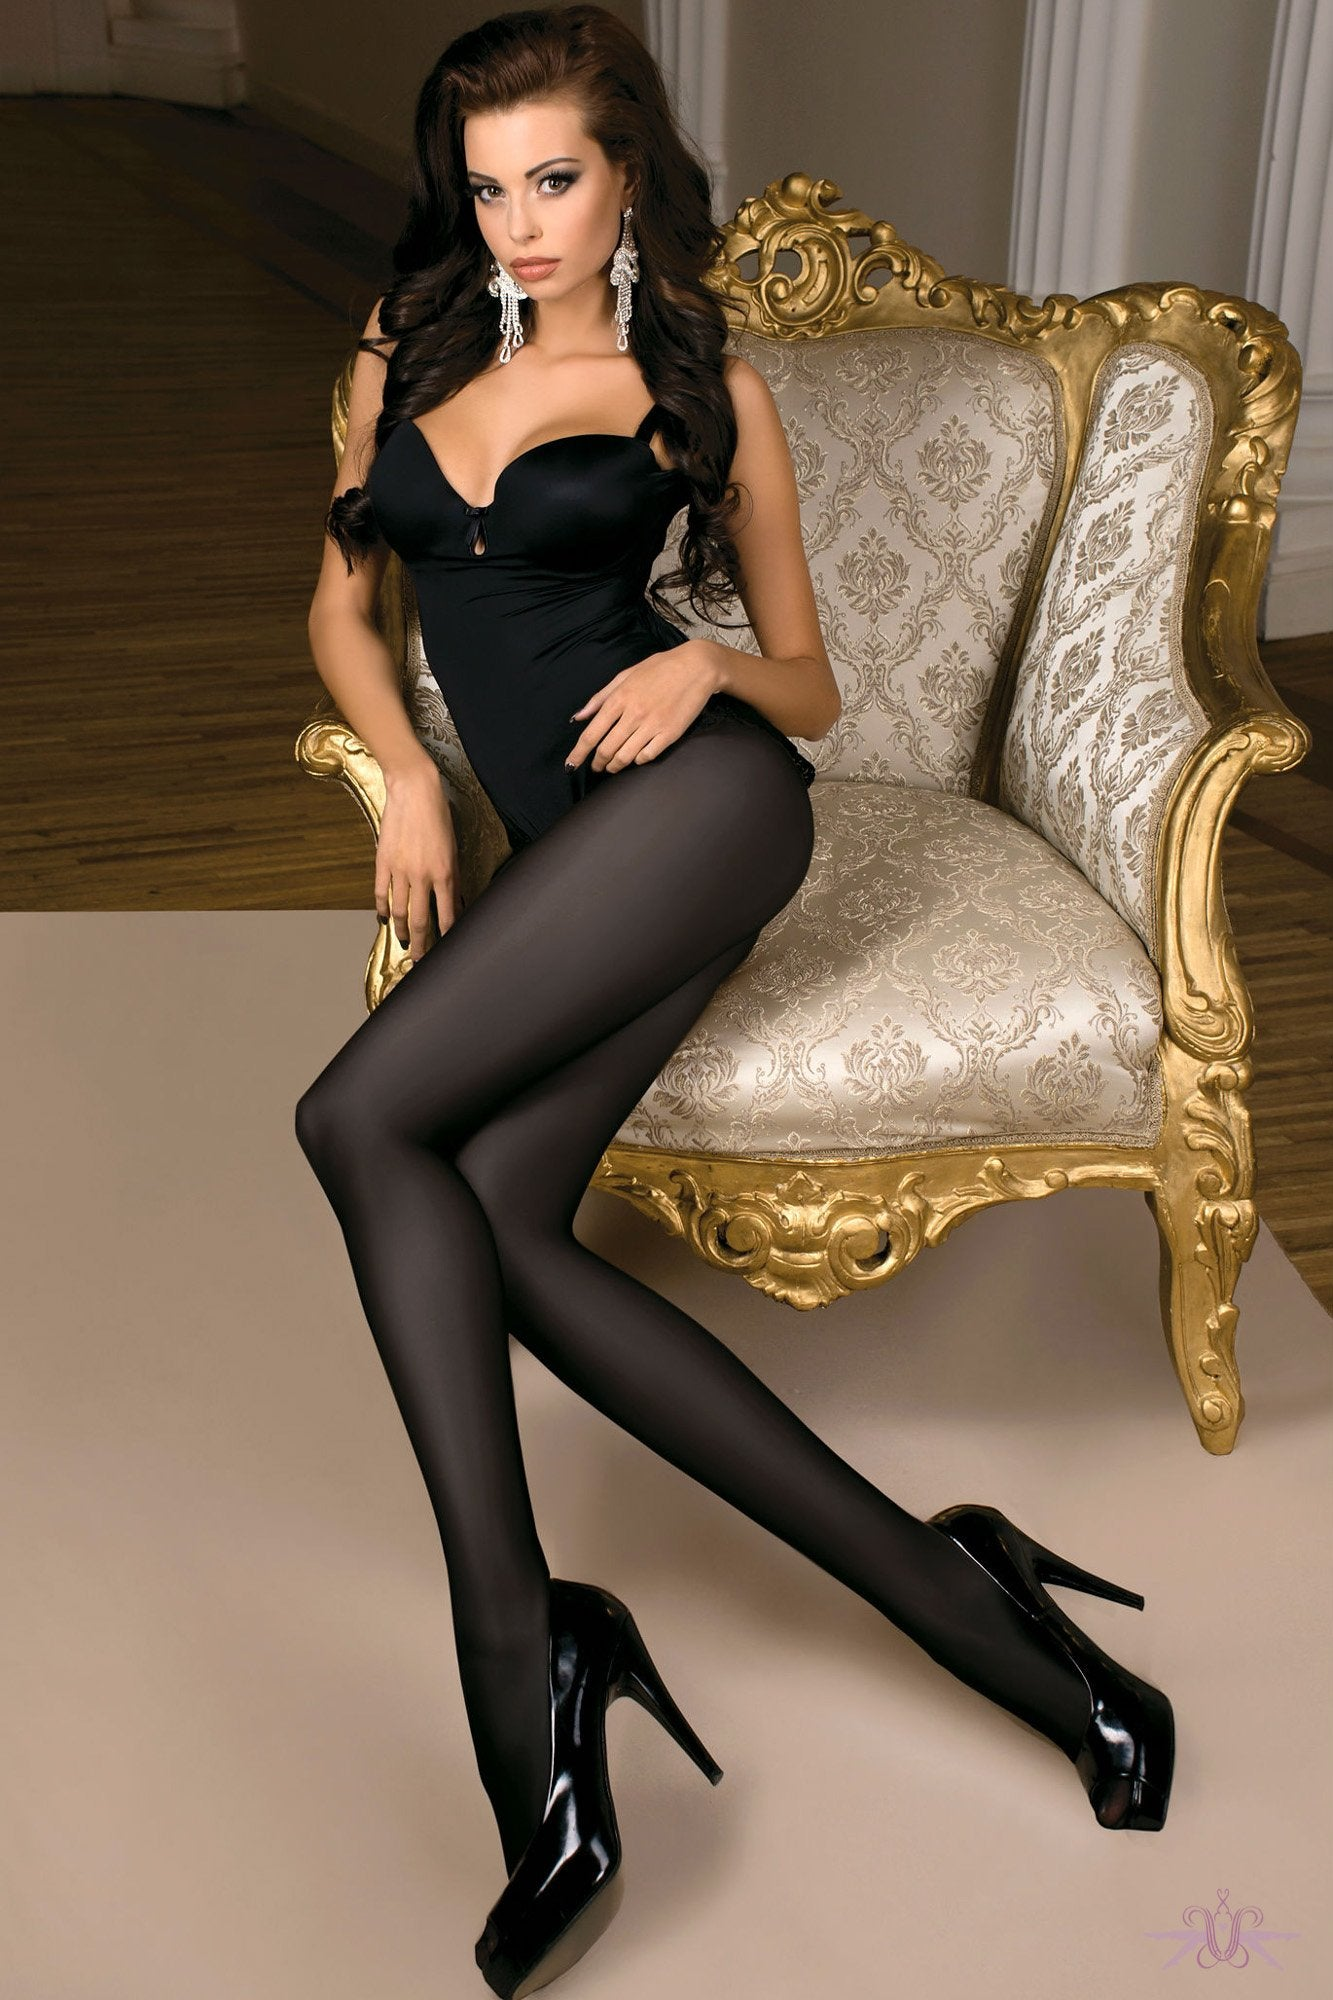 Ballerina Black Opaque Tights - The Hosiery Box